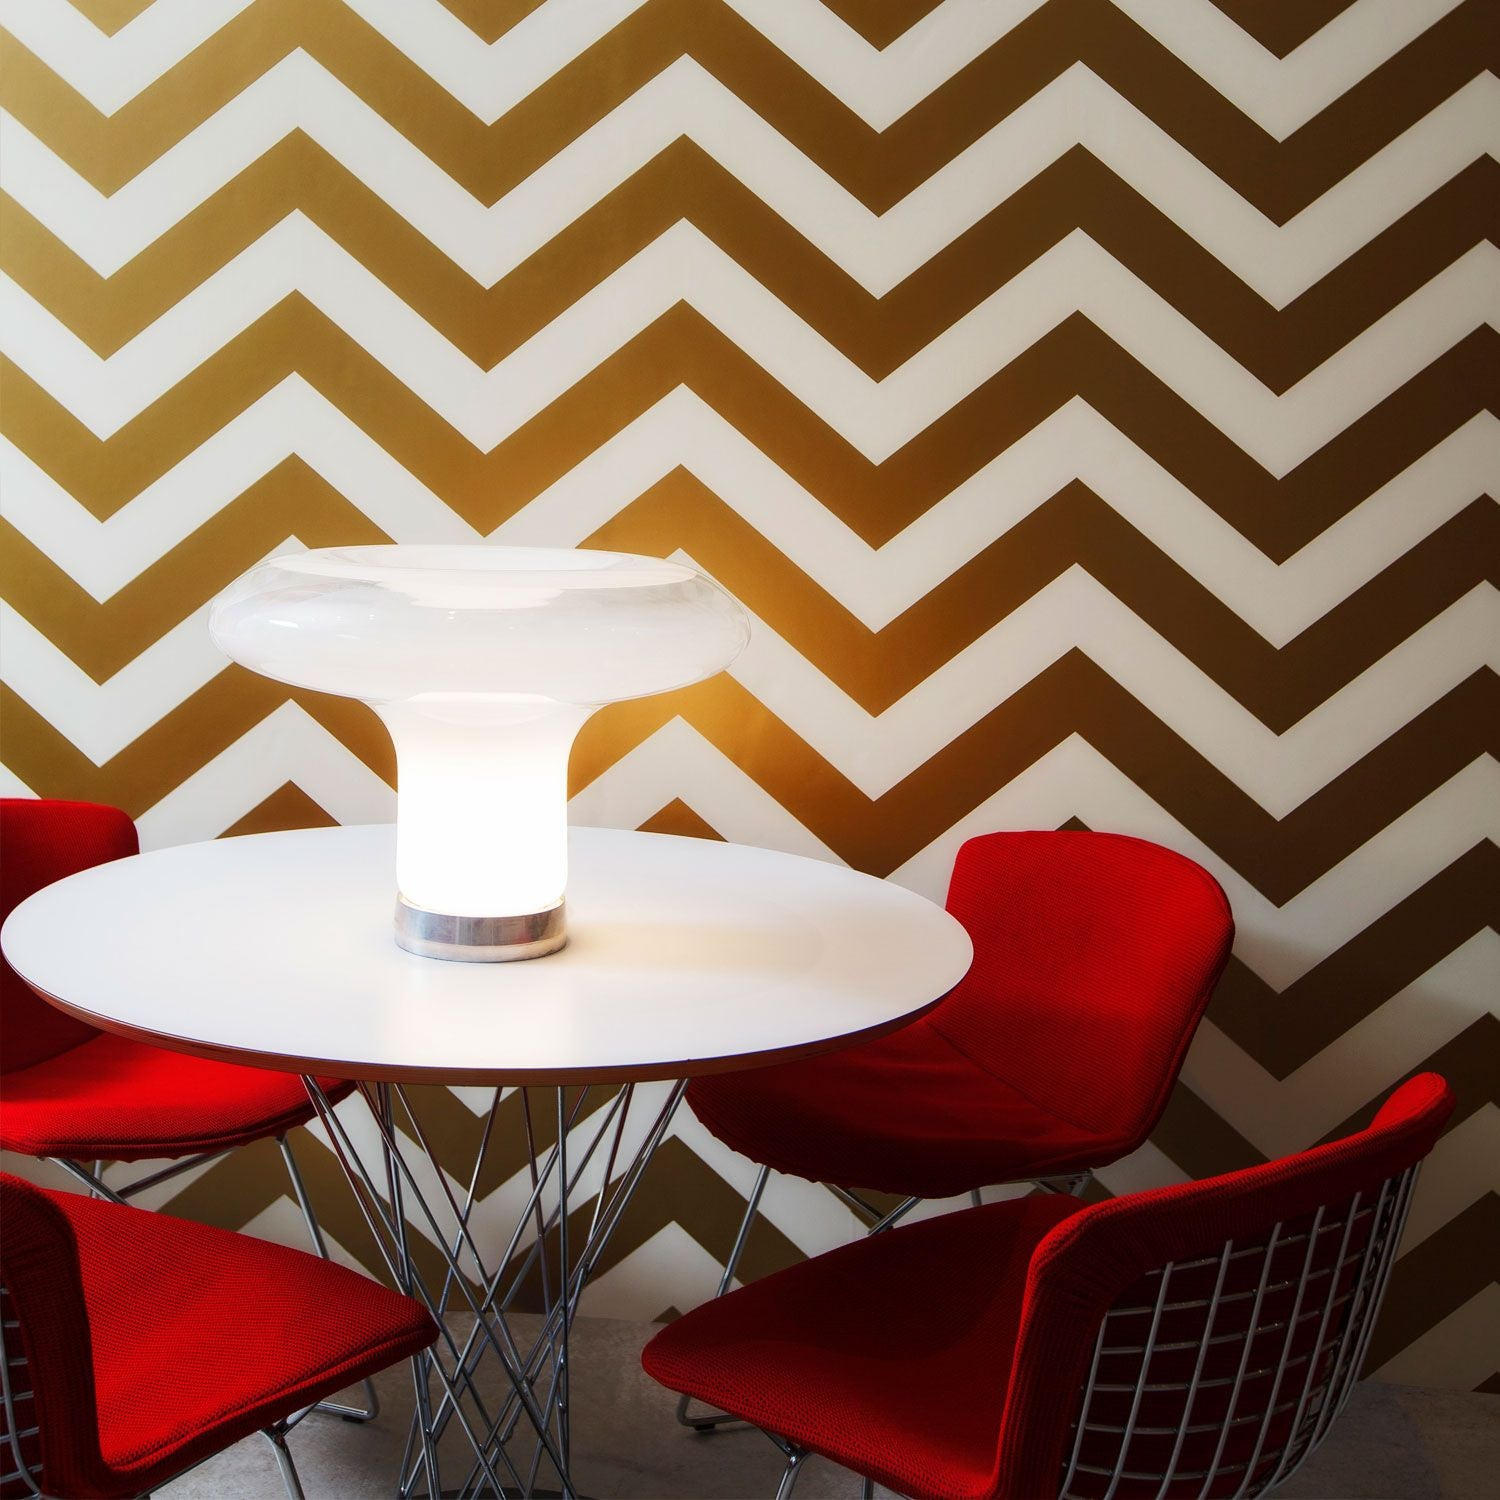 Amazing Temporary Wallpaper   Chevron   Metallic Gold Part 20